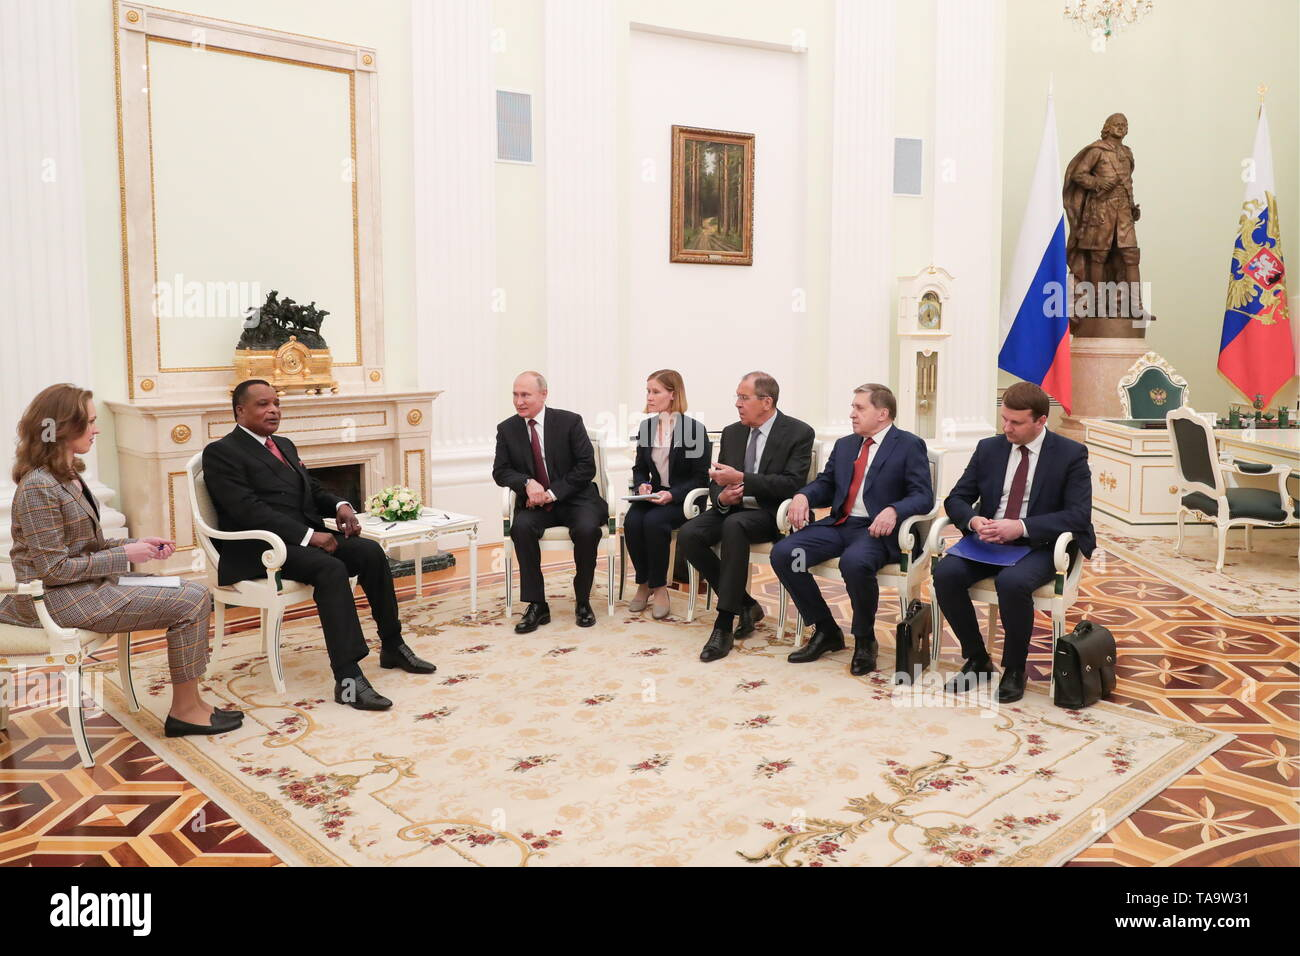 Moscow, Russia. 23rd May, 2019. MOSCOW, RUSSIA - MAY 23, 2019: President of Republic of the Congo, Denis Sassou Nguesso (2nd L) and Russia's President Vladimir Putin (3rd L) during a meeting at the Moscow Kremlin. Mikhail Klimentyev/Russian Presidential Press and Information Office/TASS Credit: ITAR-TASS News Agency/Alamy Live News - Stock Image